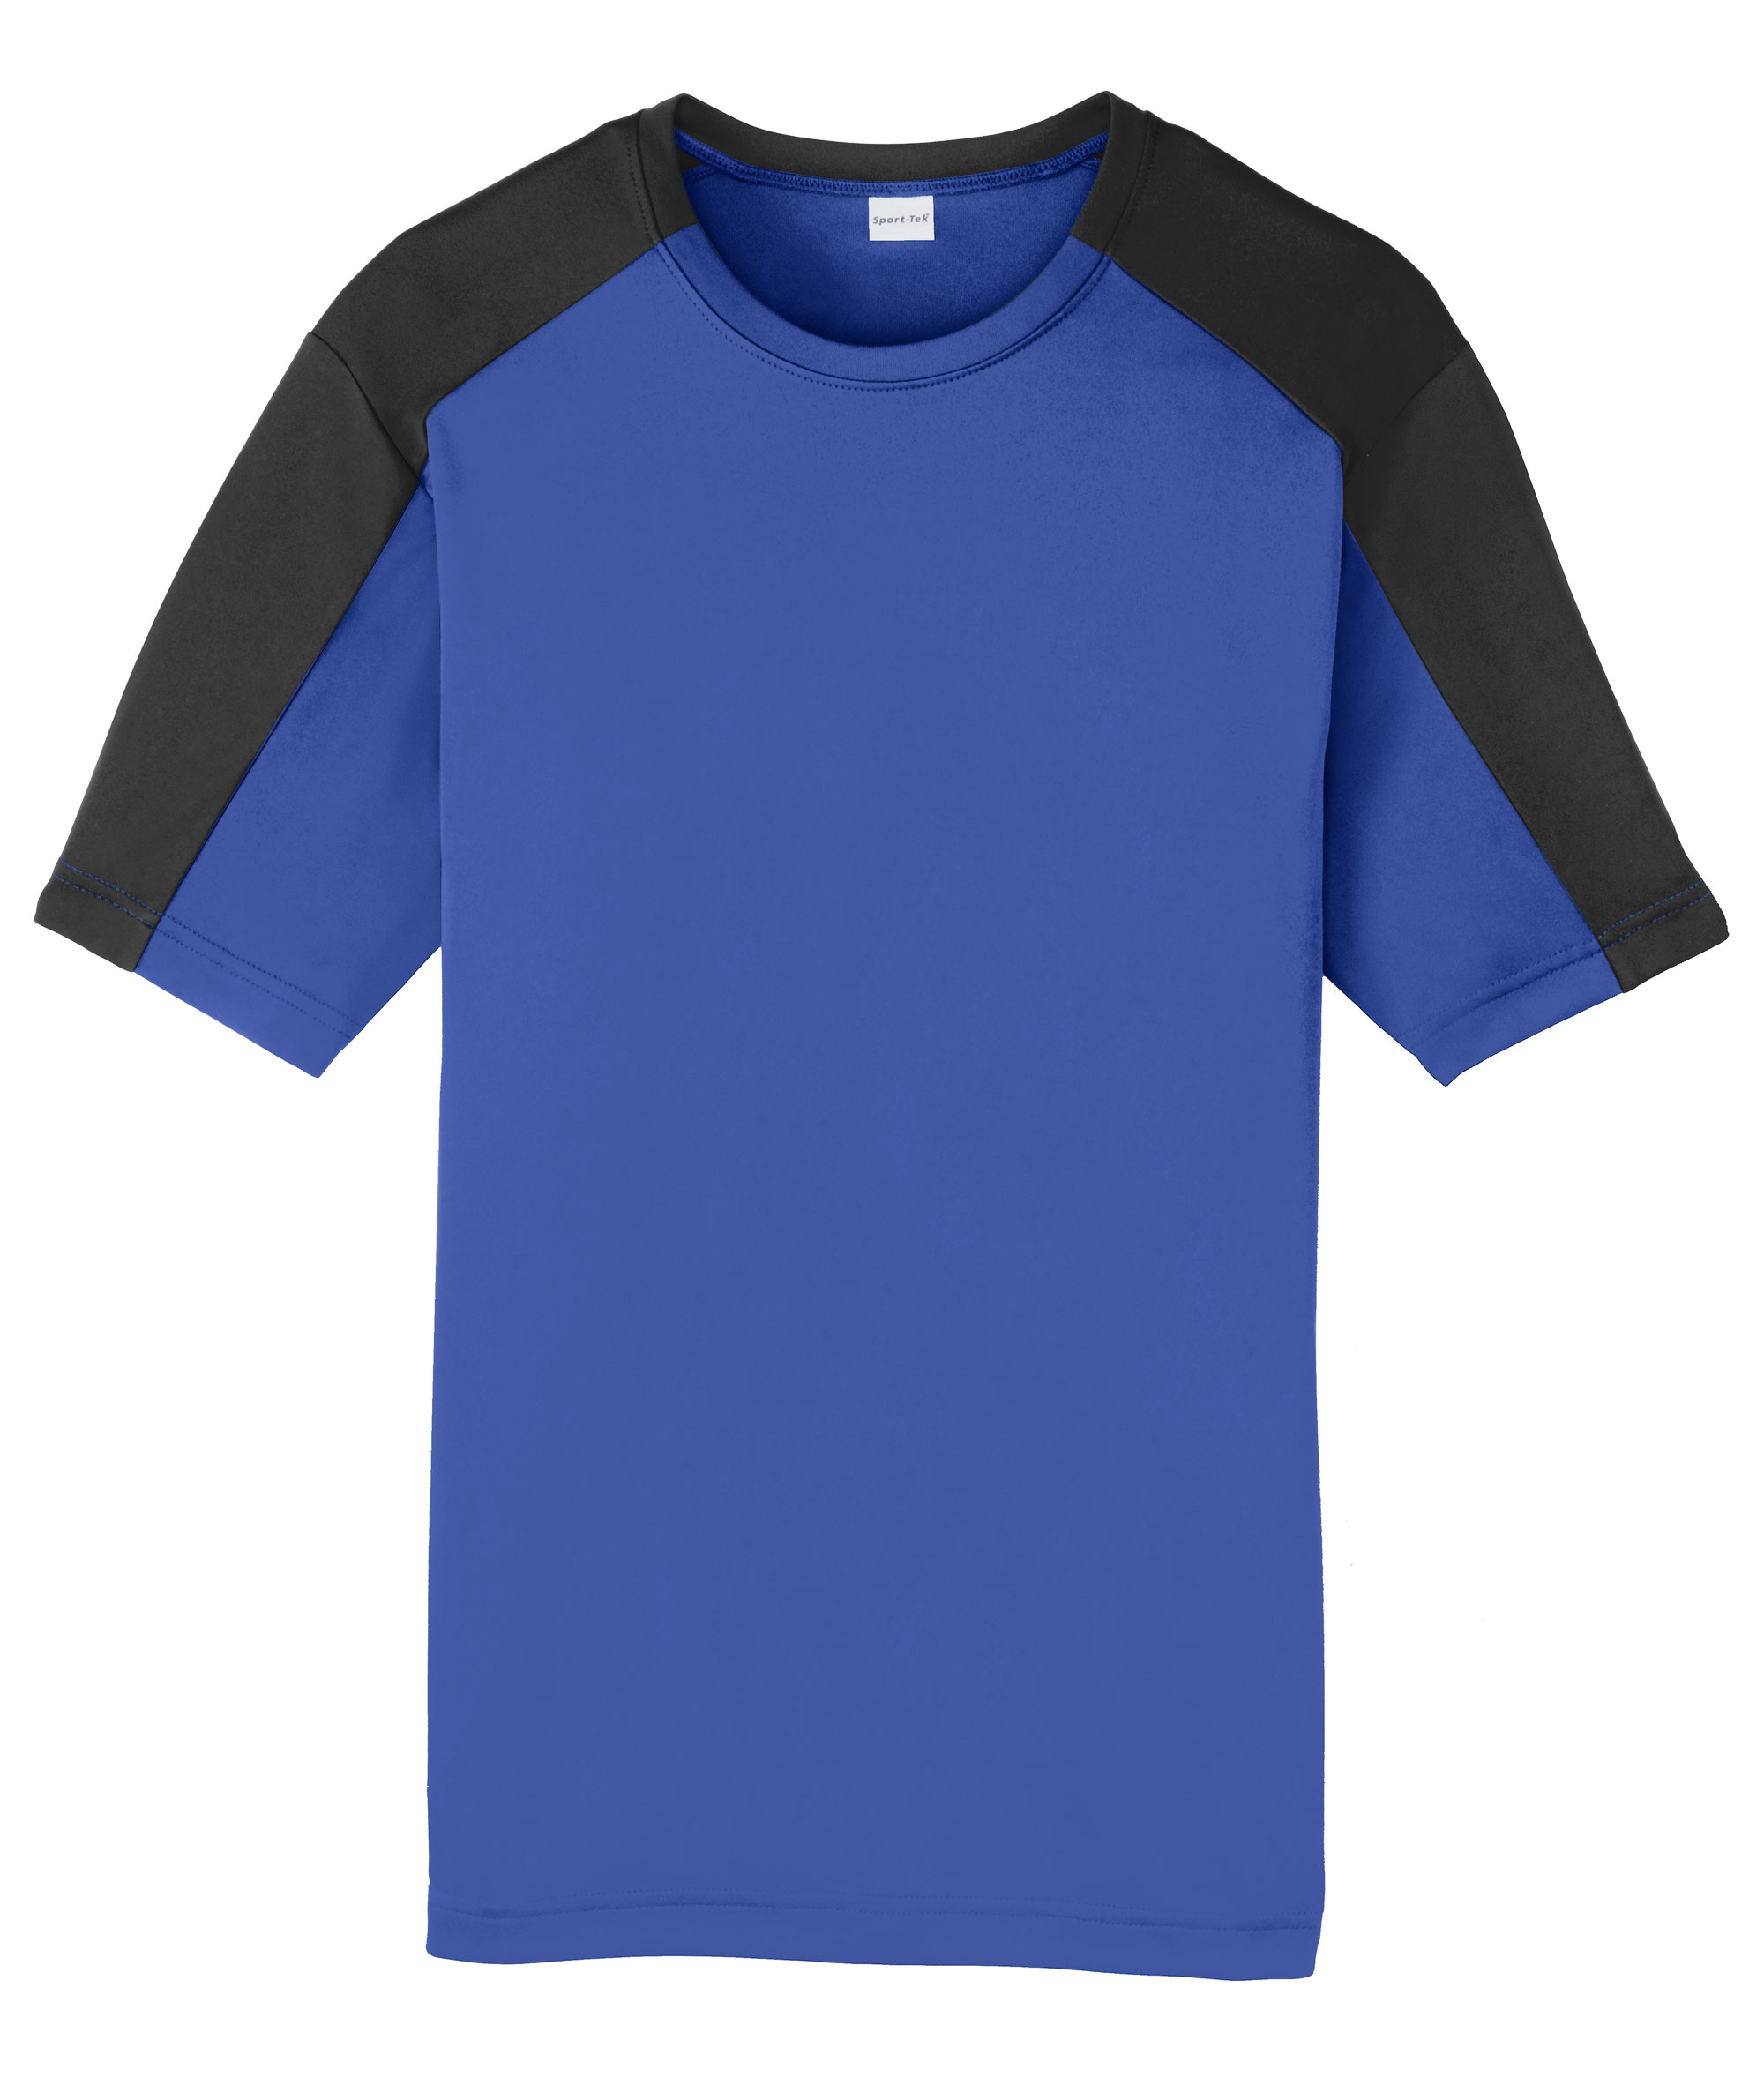 Youth Competitor Sleeve-Blocked Tee